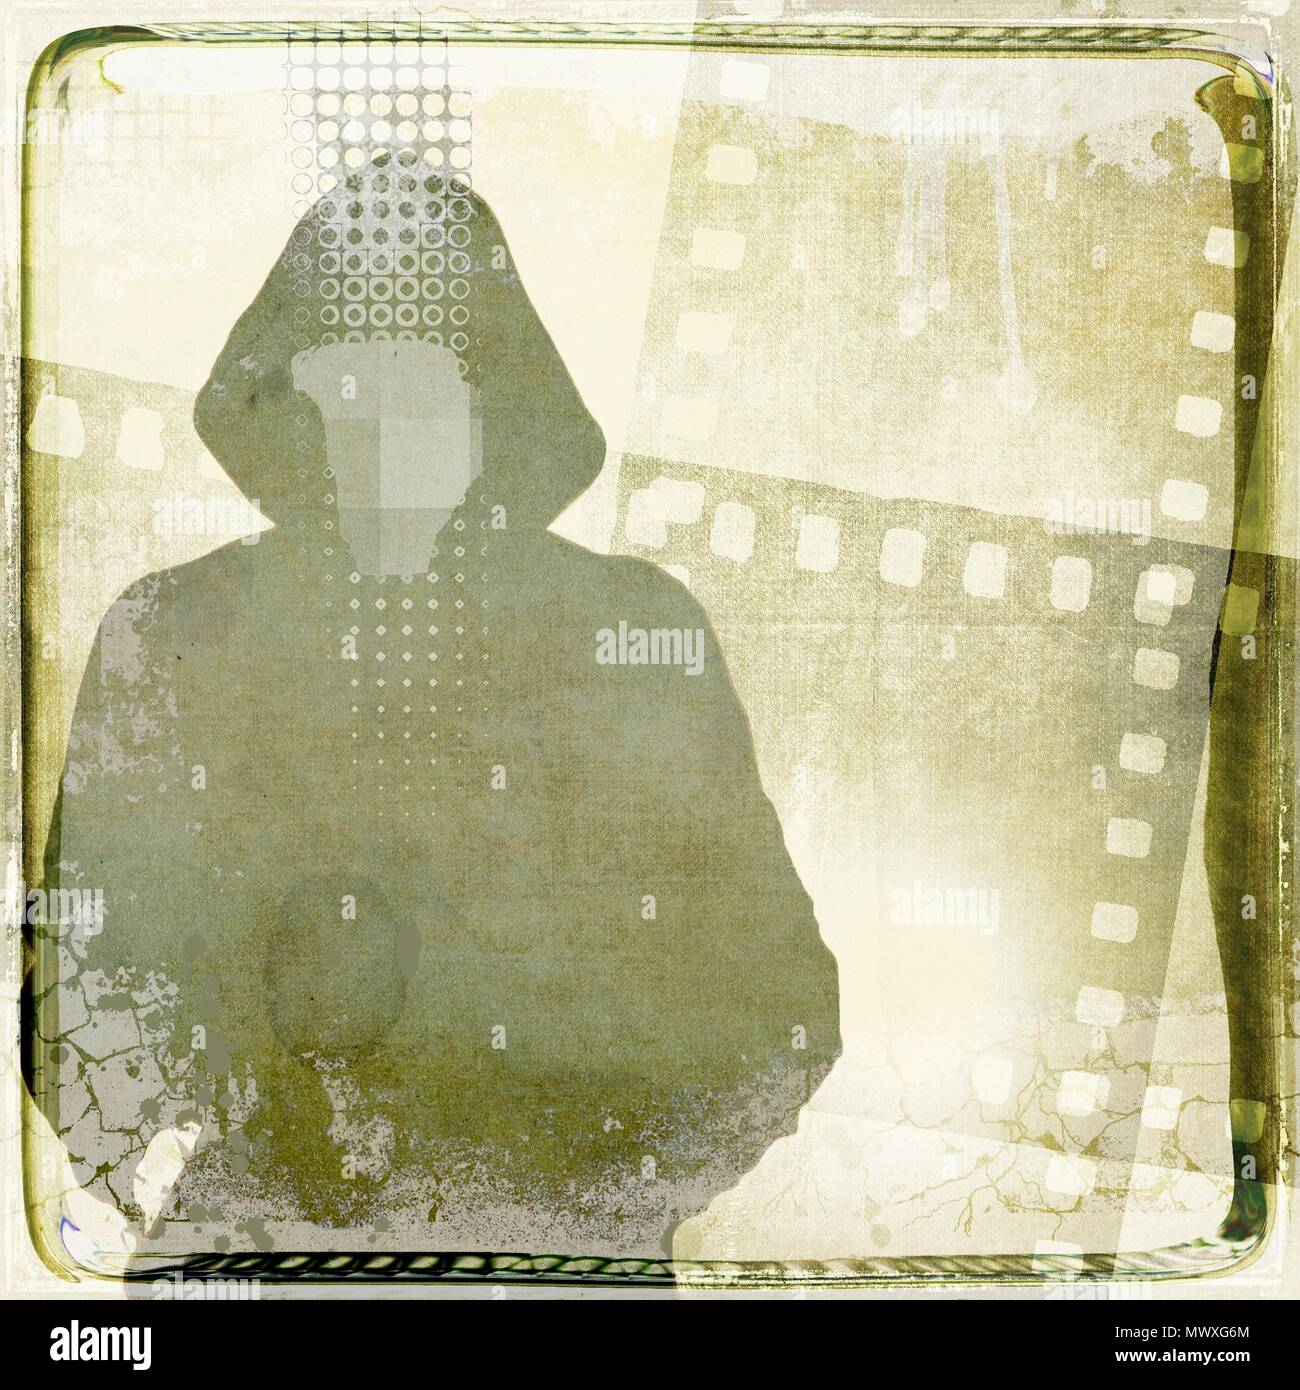 Grunge single man with hooded sweatshirt silhouette on film strip background. Sepia tones. - Stock Image